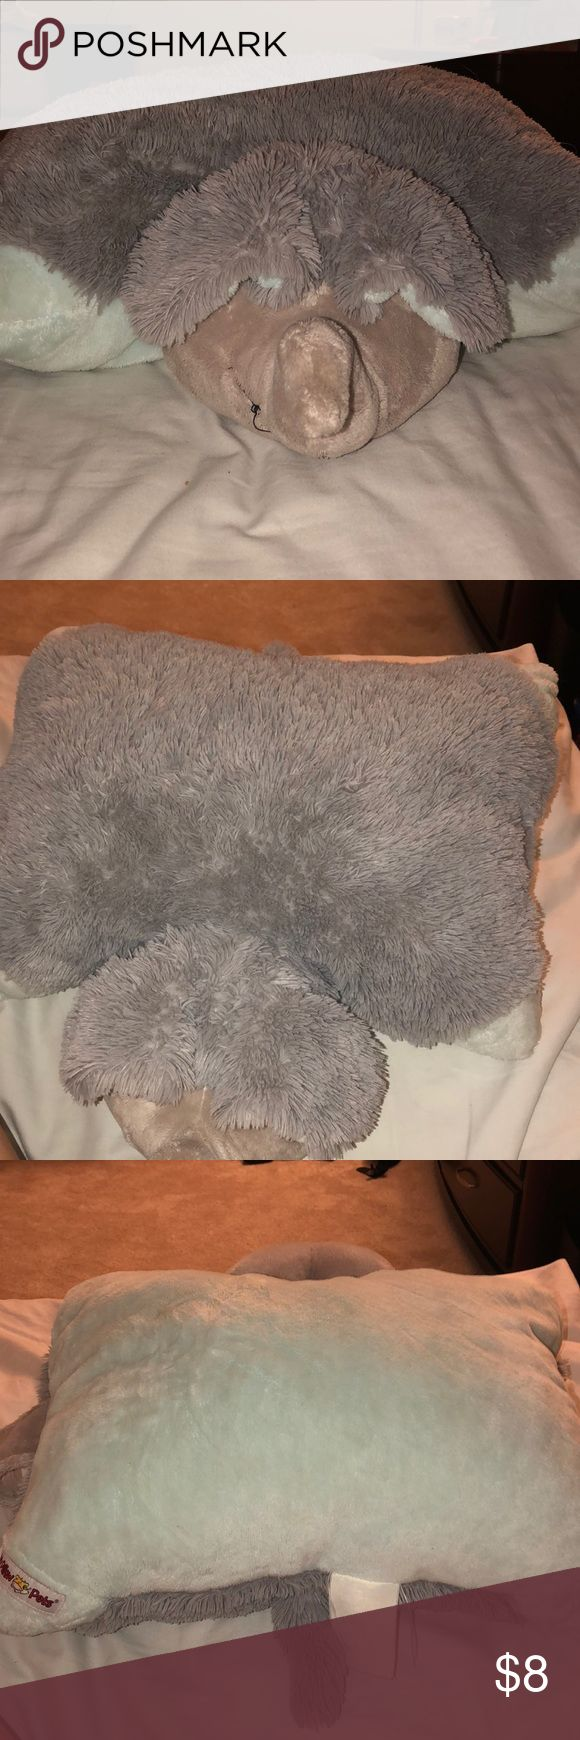 elephant pillow pet lightly used no stains! Other